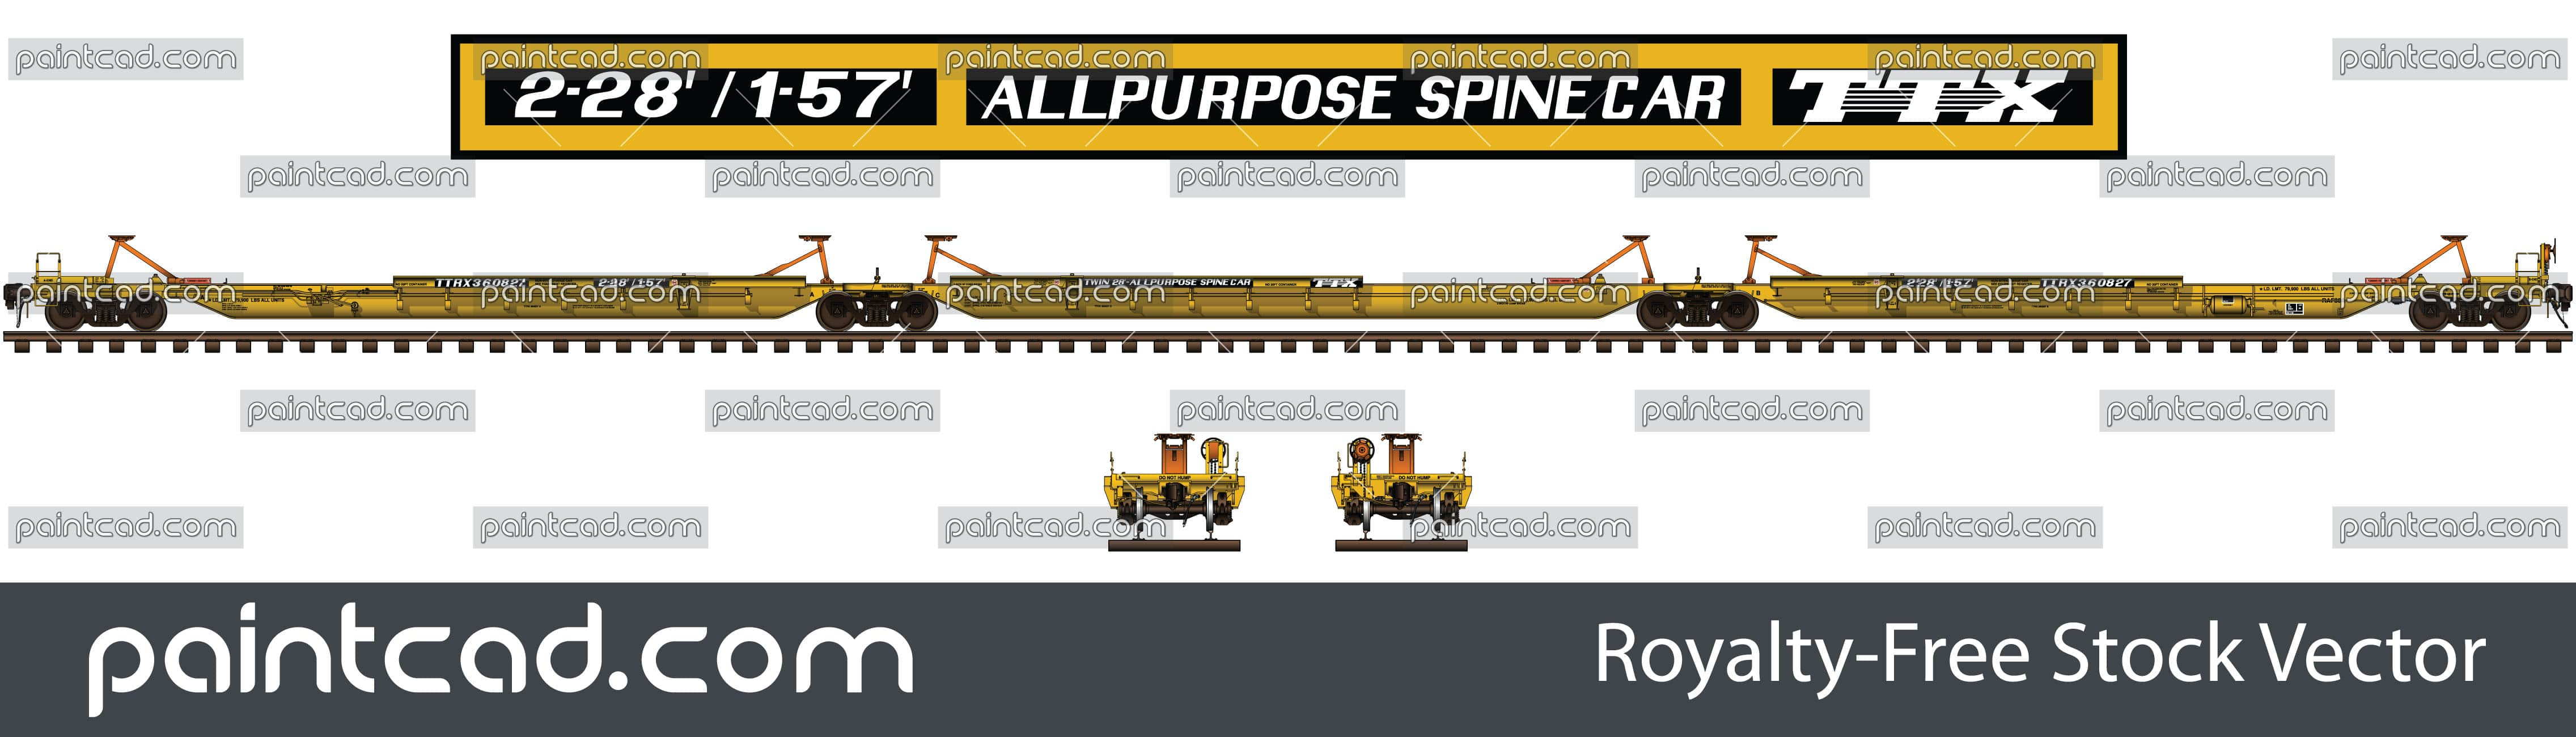 Trailer train TTX with intermodal all purpose spine cars - vector illustration